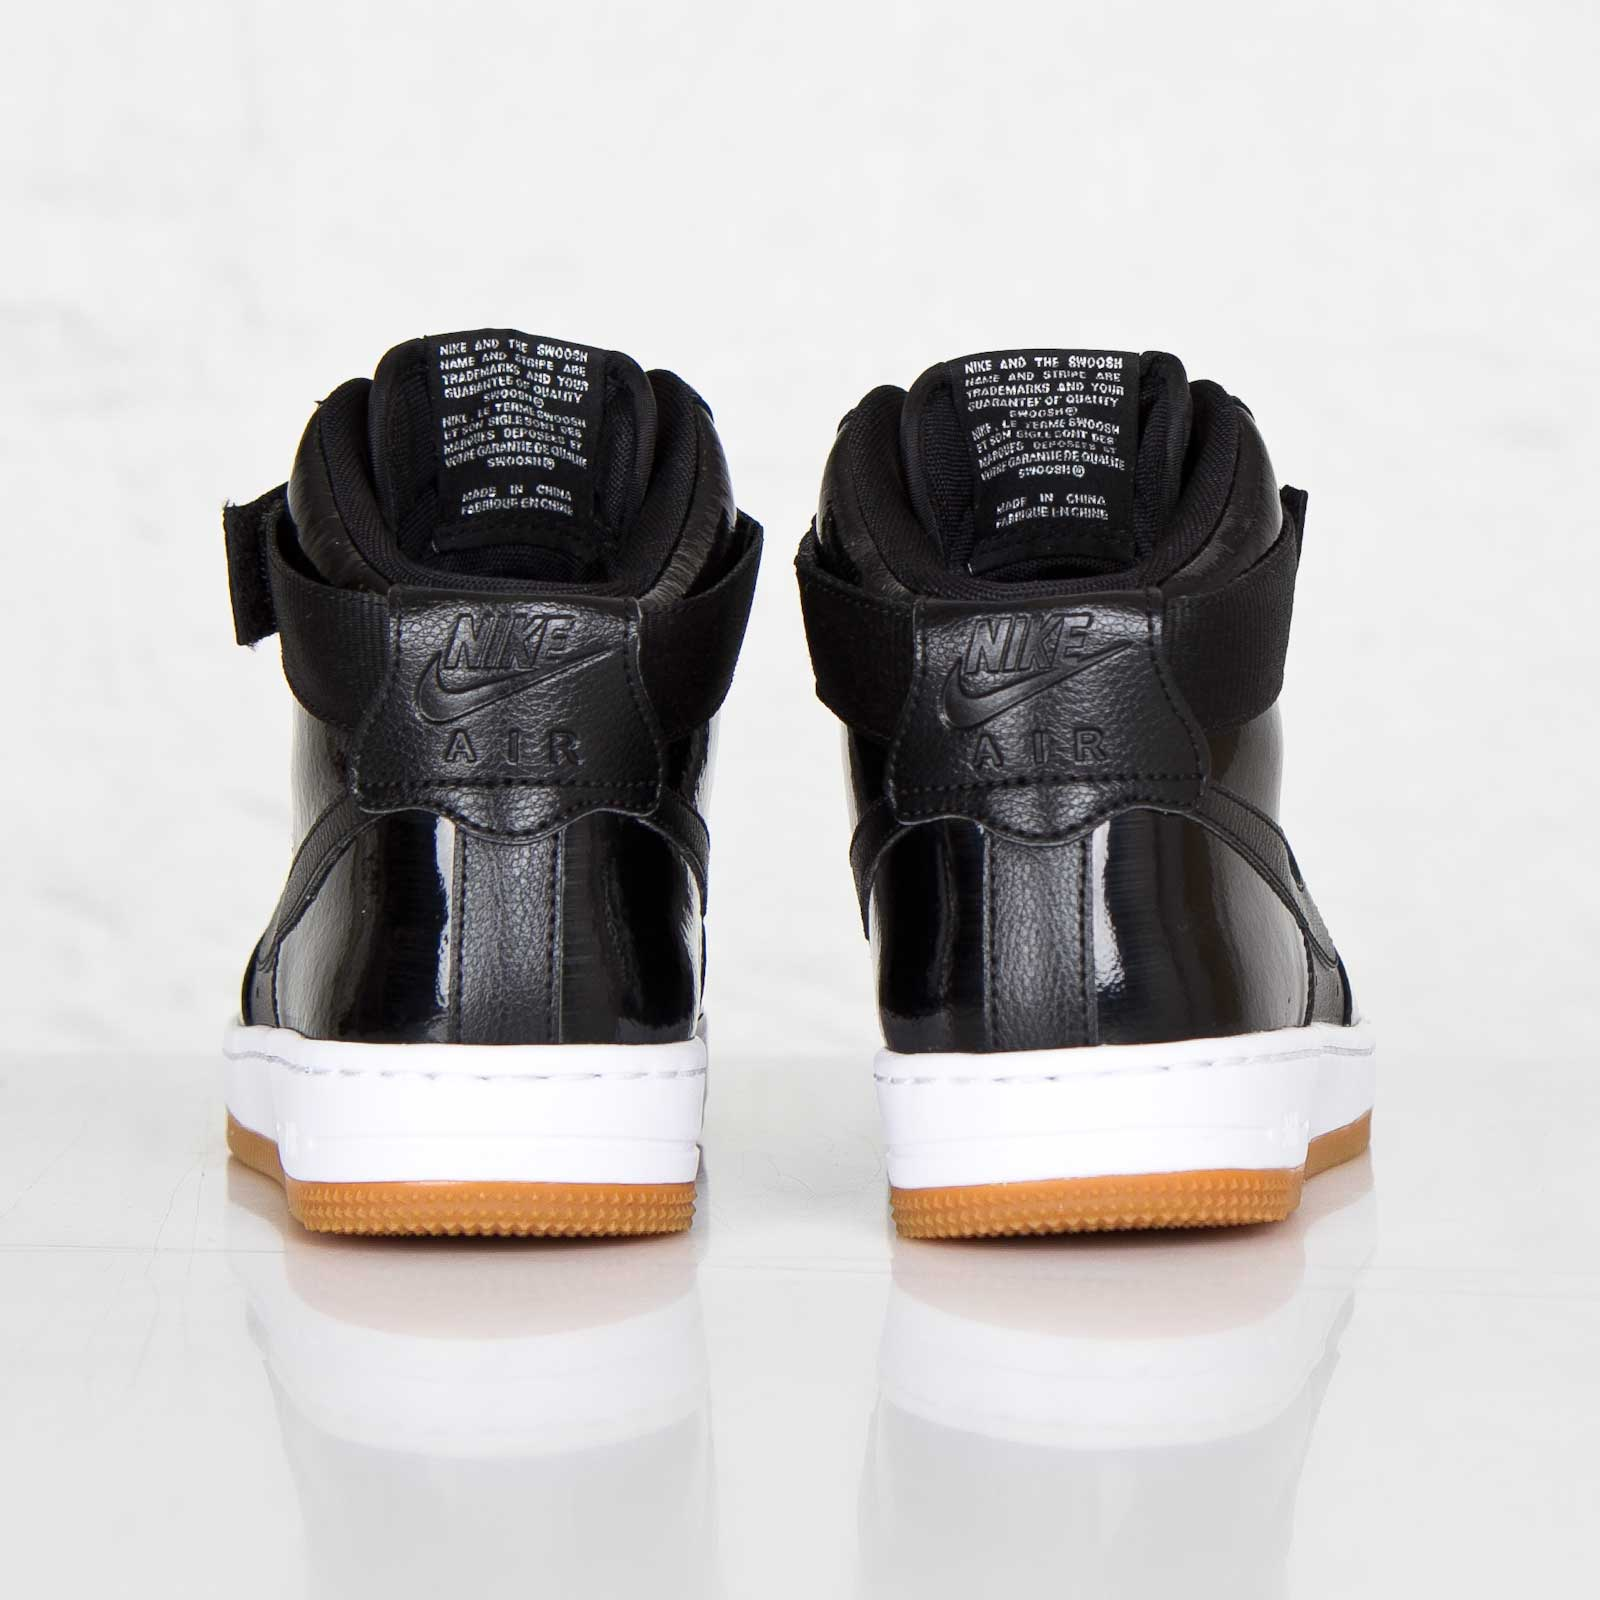 Nike Wmns Air Force 1 Ultra Force Mid 654851 001 Sneakersnstuff